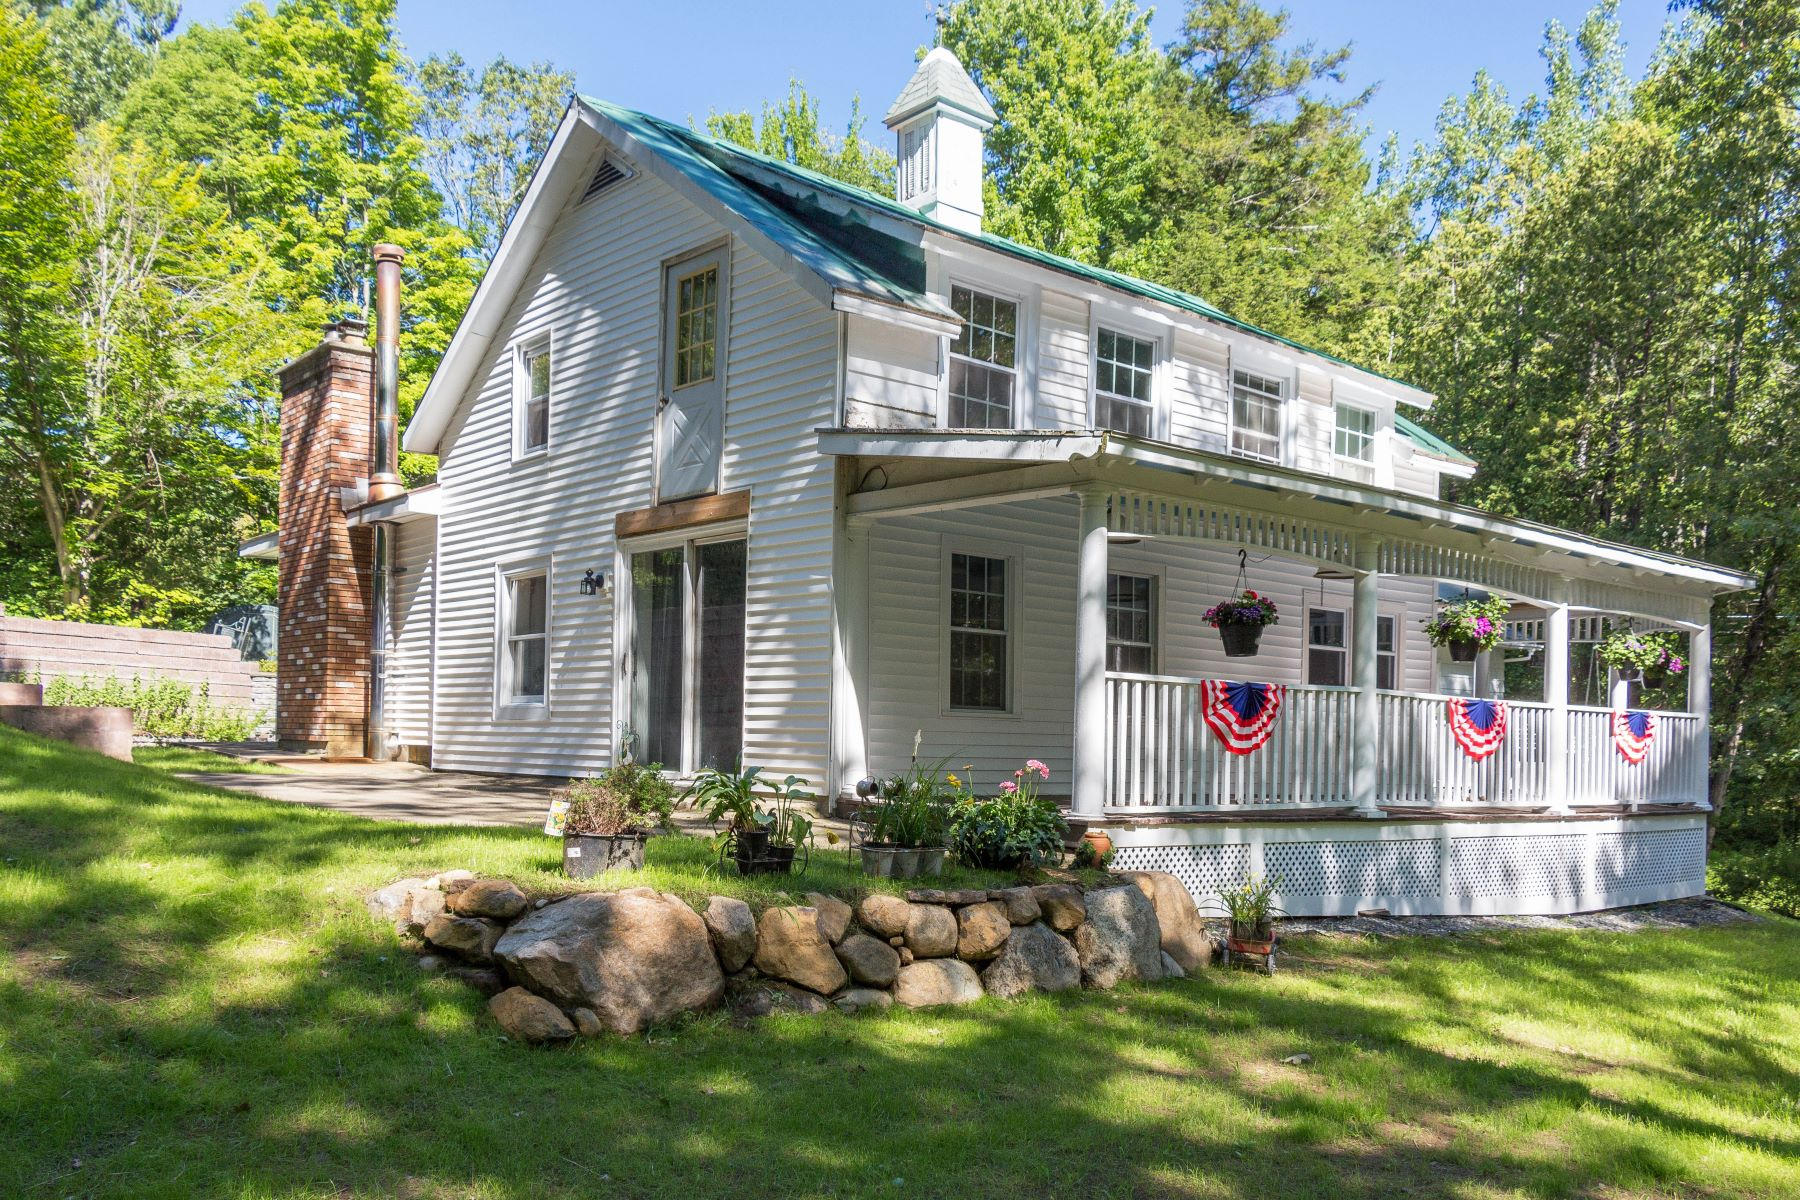 Single Family Homes for Active at Multi-Use Parcels on 13+ Acres in Lake George 352 Middle Rd Lake George, New York 12845 United States